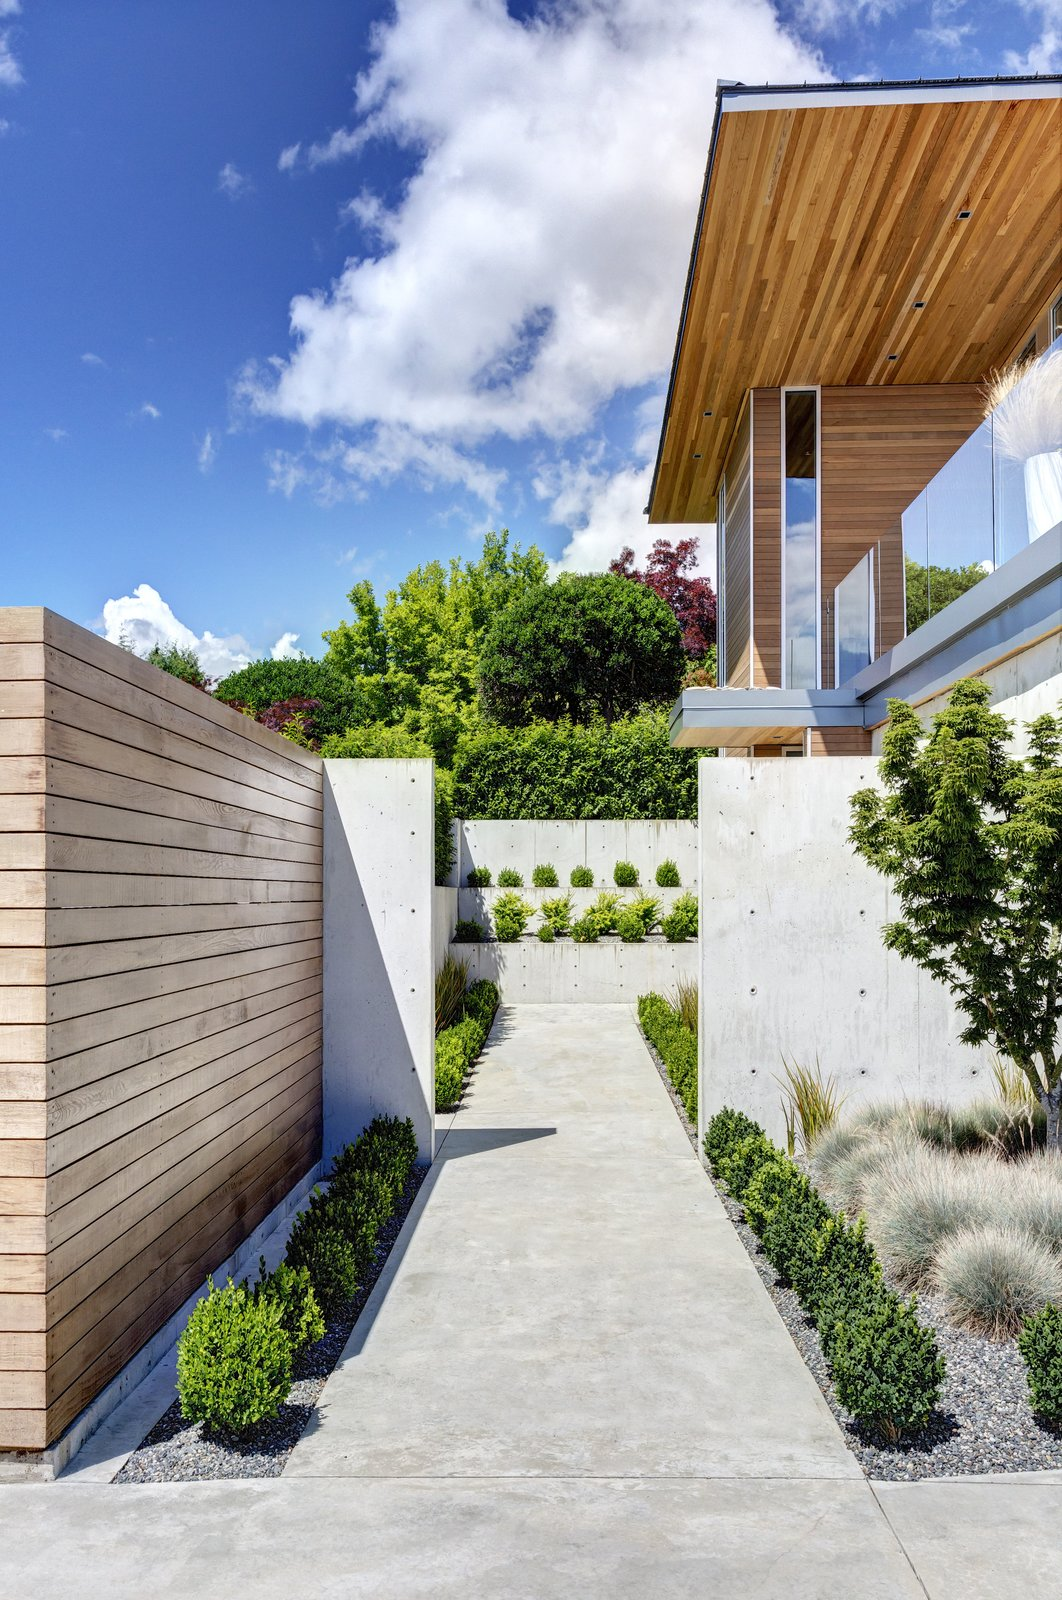 Garden Wall Residence, front entry walk  Garden Wall Residence by Garret Cord Werner